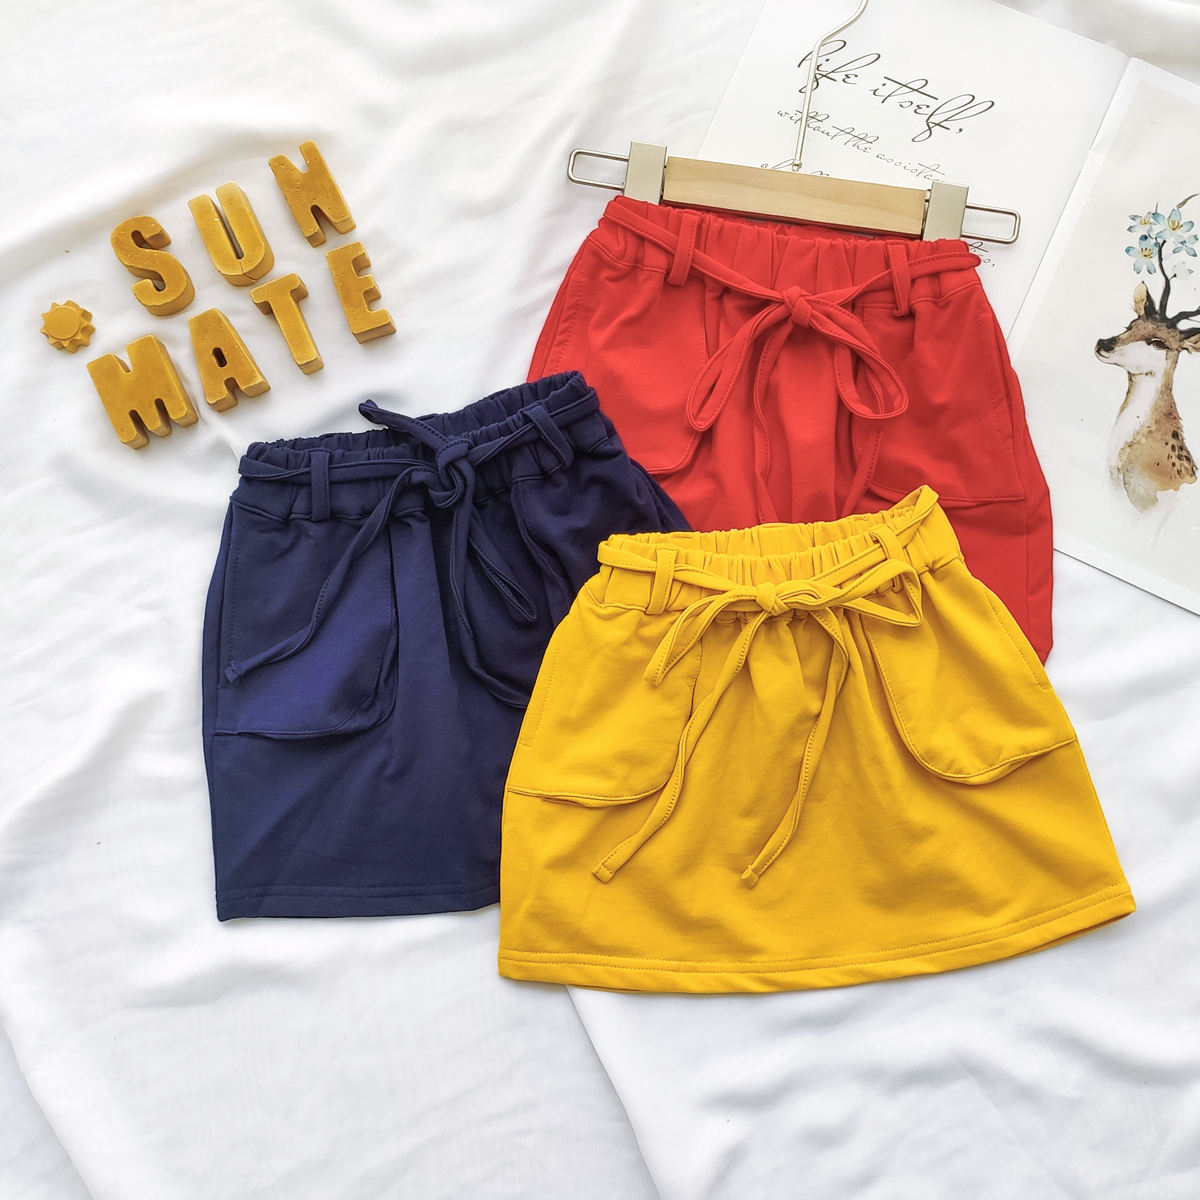 Girls' Skirts 2-6 Years Wholesale RTS Children Solid Color Cotton Skirt Kids Fashion Mini Skirts For Kids Girls